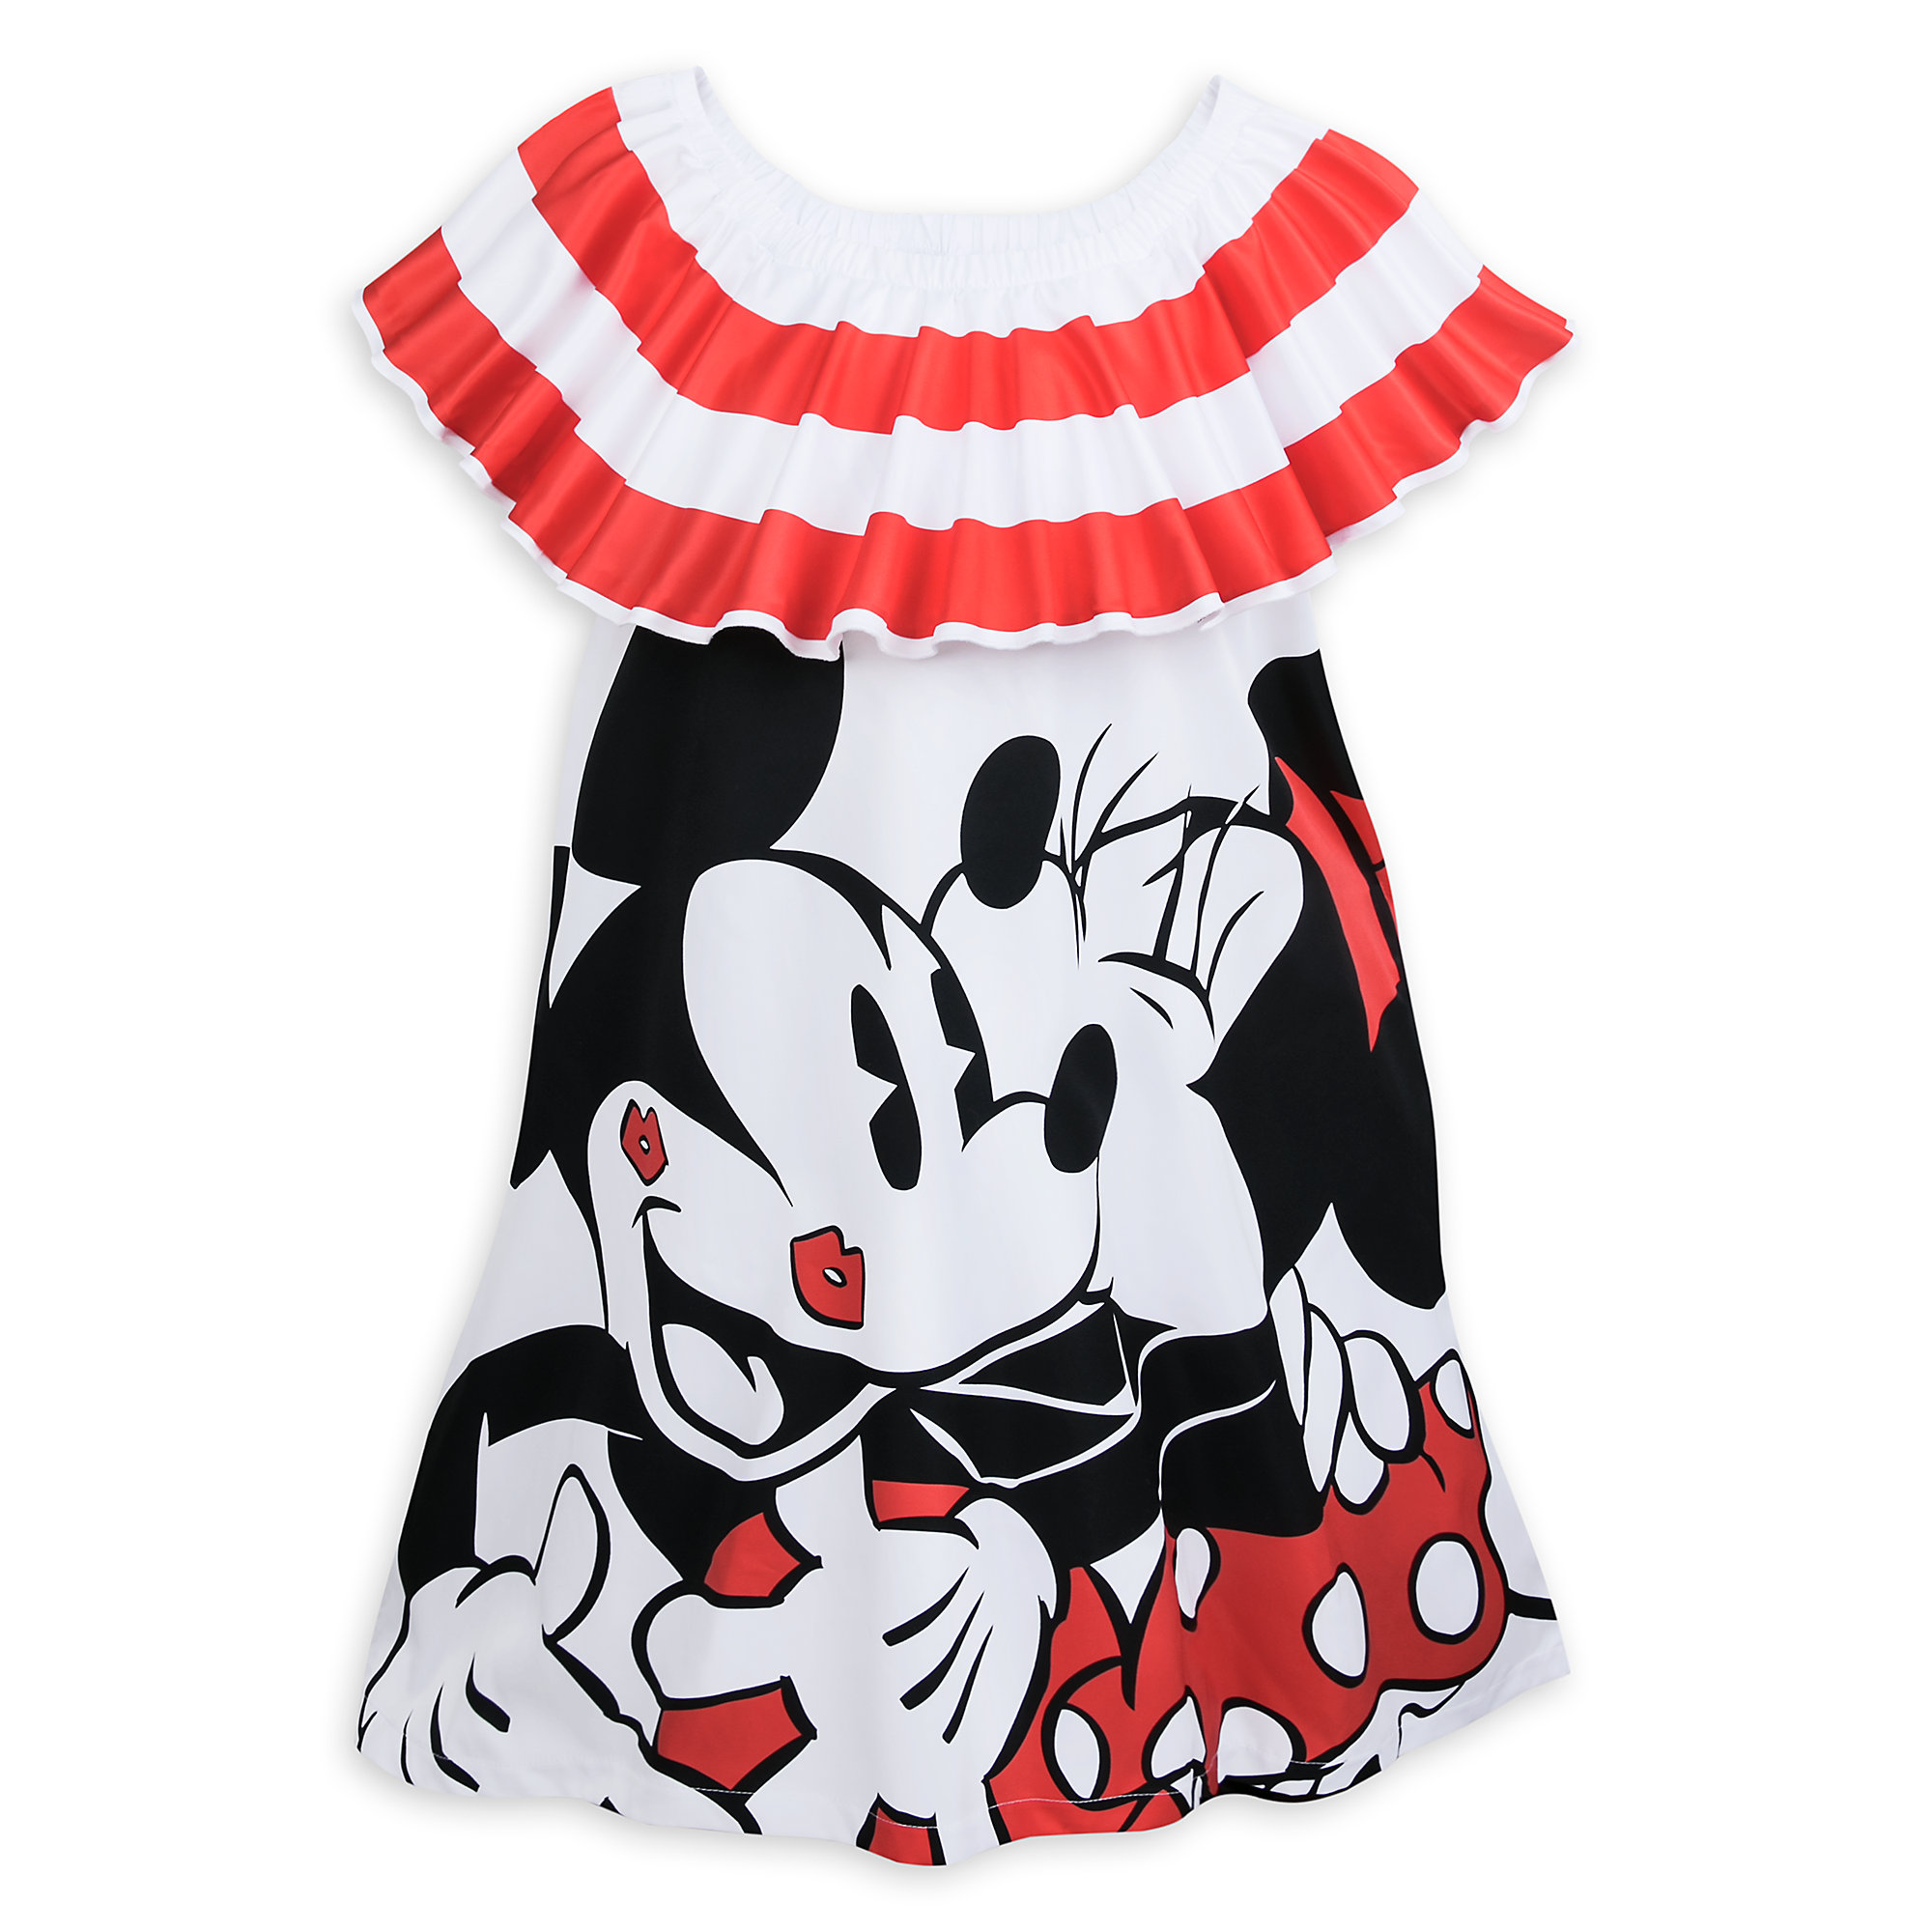 Mickey Mouse and Minnie Mouse Off-the-Shoulder Dress for Women by Sugarbird